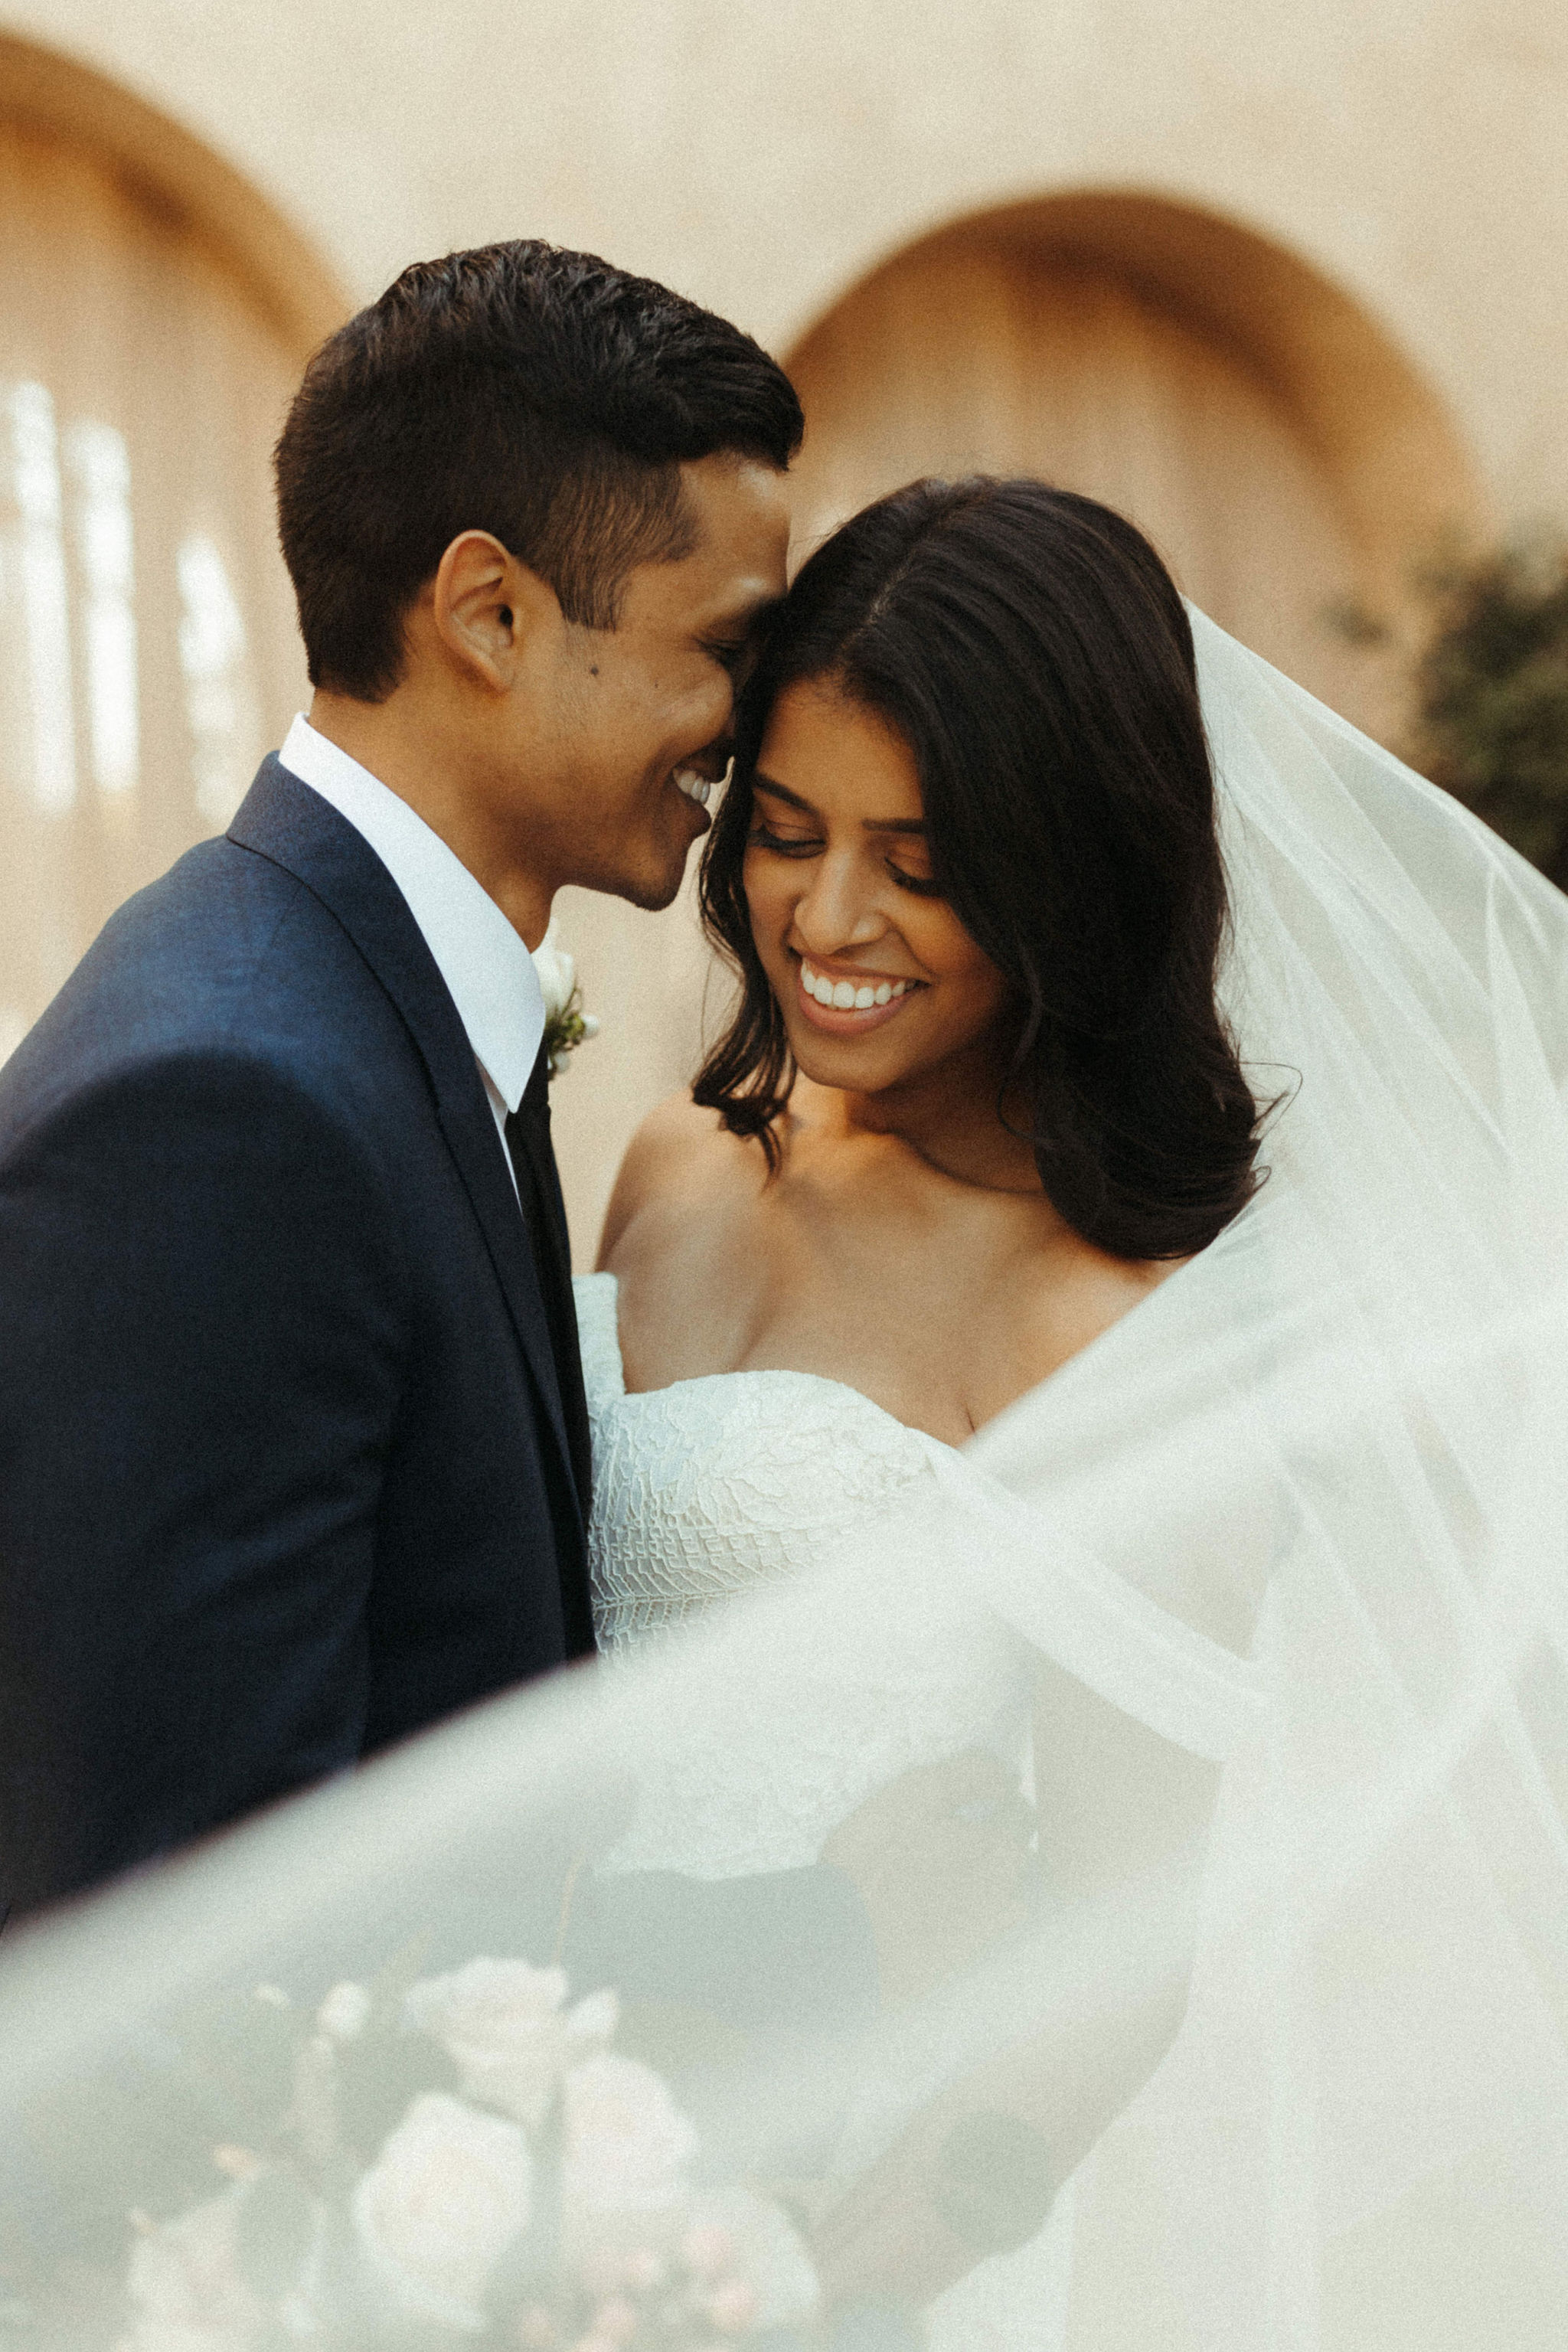 beautiful veil photos on wedding day